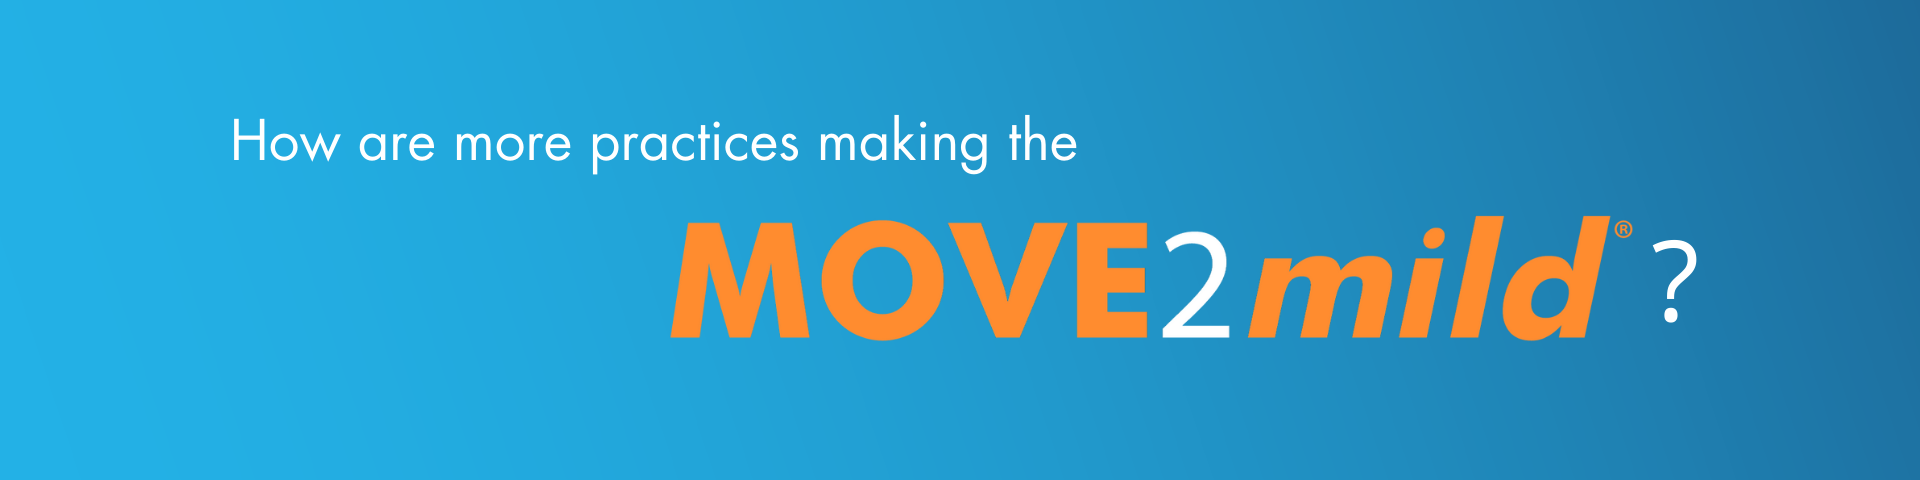 How are more practices making the MOVE 2 mild?